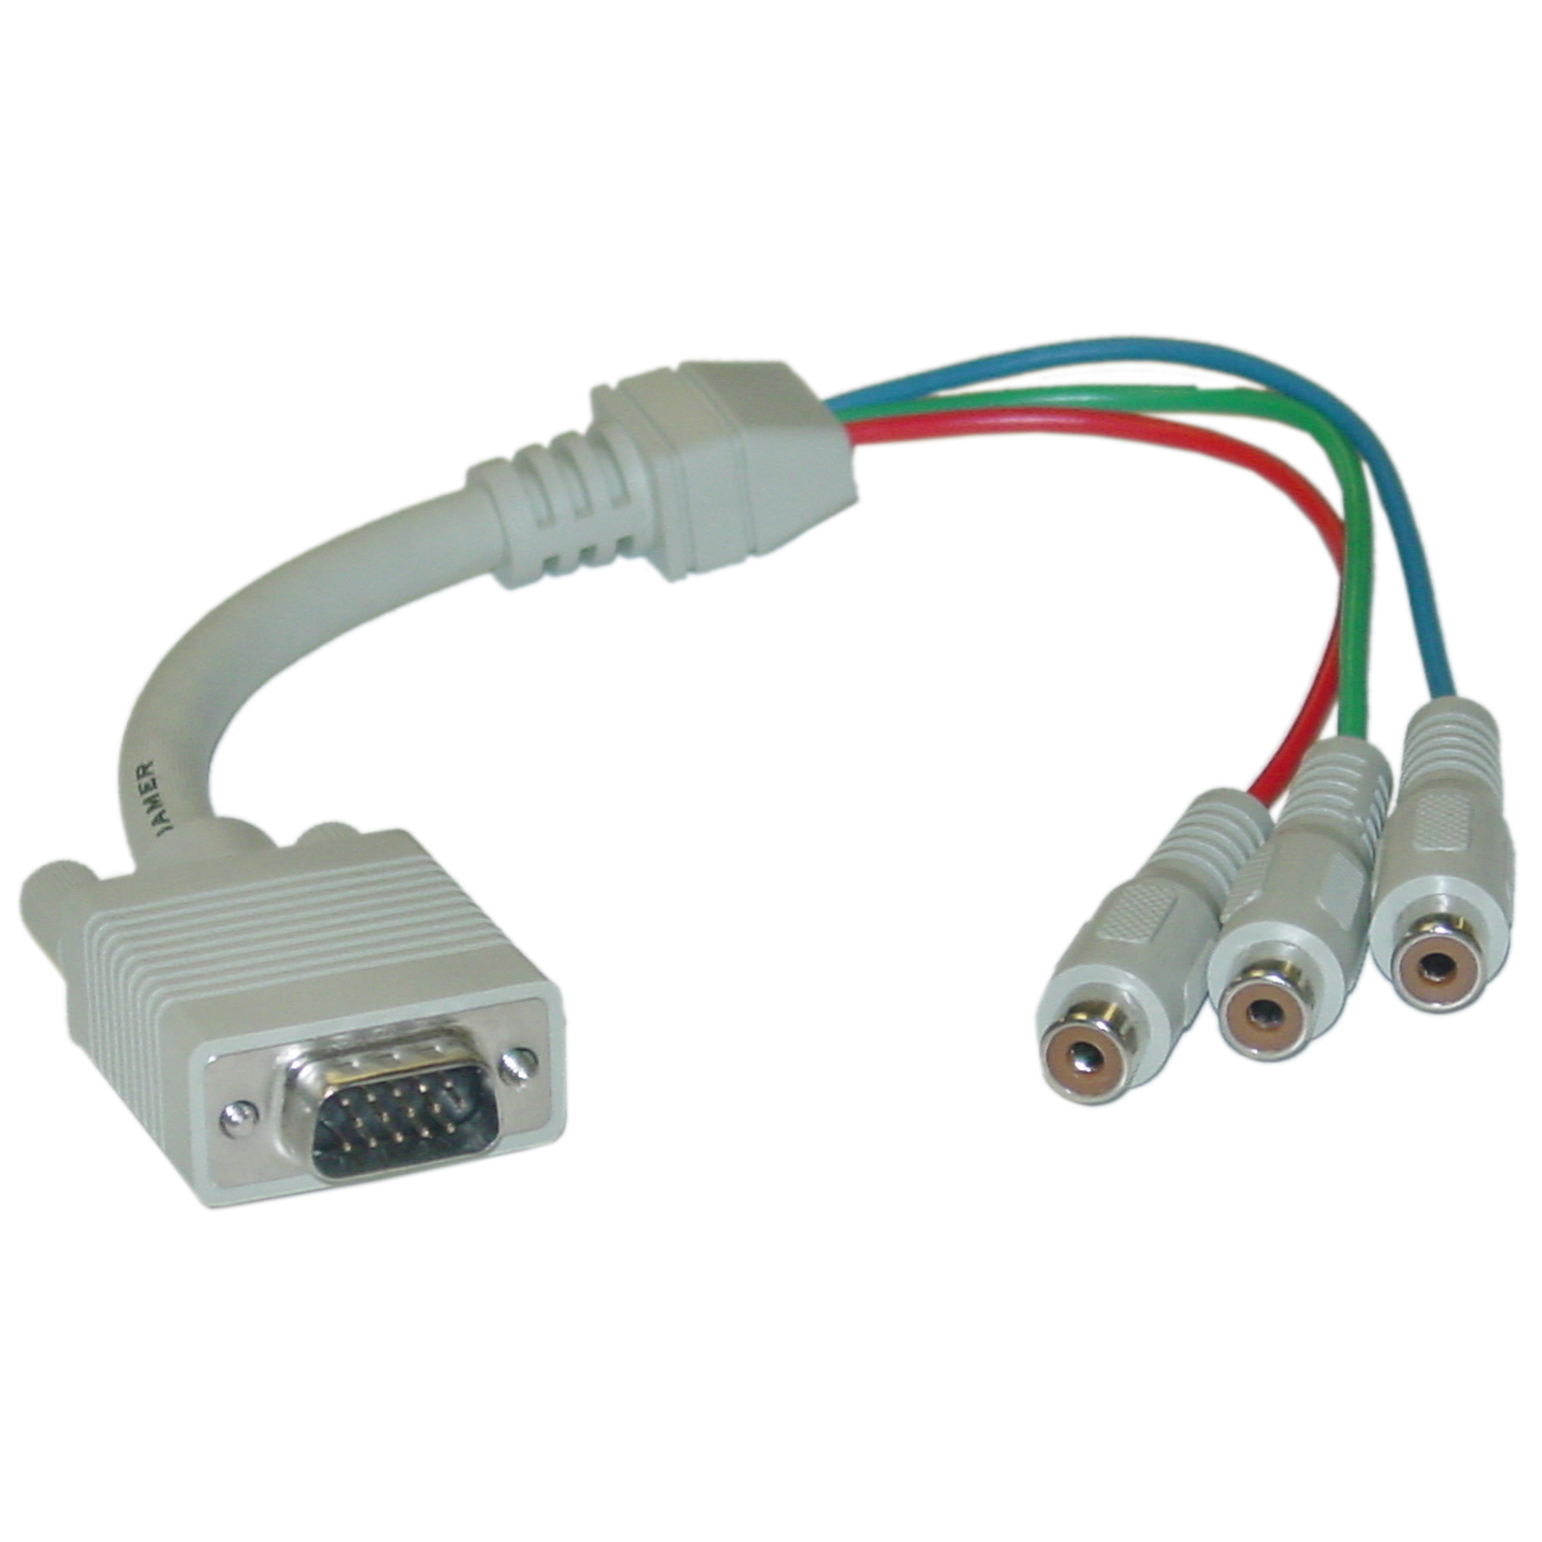 30h1 50200 rca video cable wiring diagram video cable wiring diagram \u2022 free usb to rca wiring diagram at pacquiaovsvargaslive.co